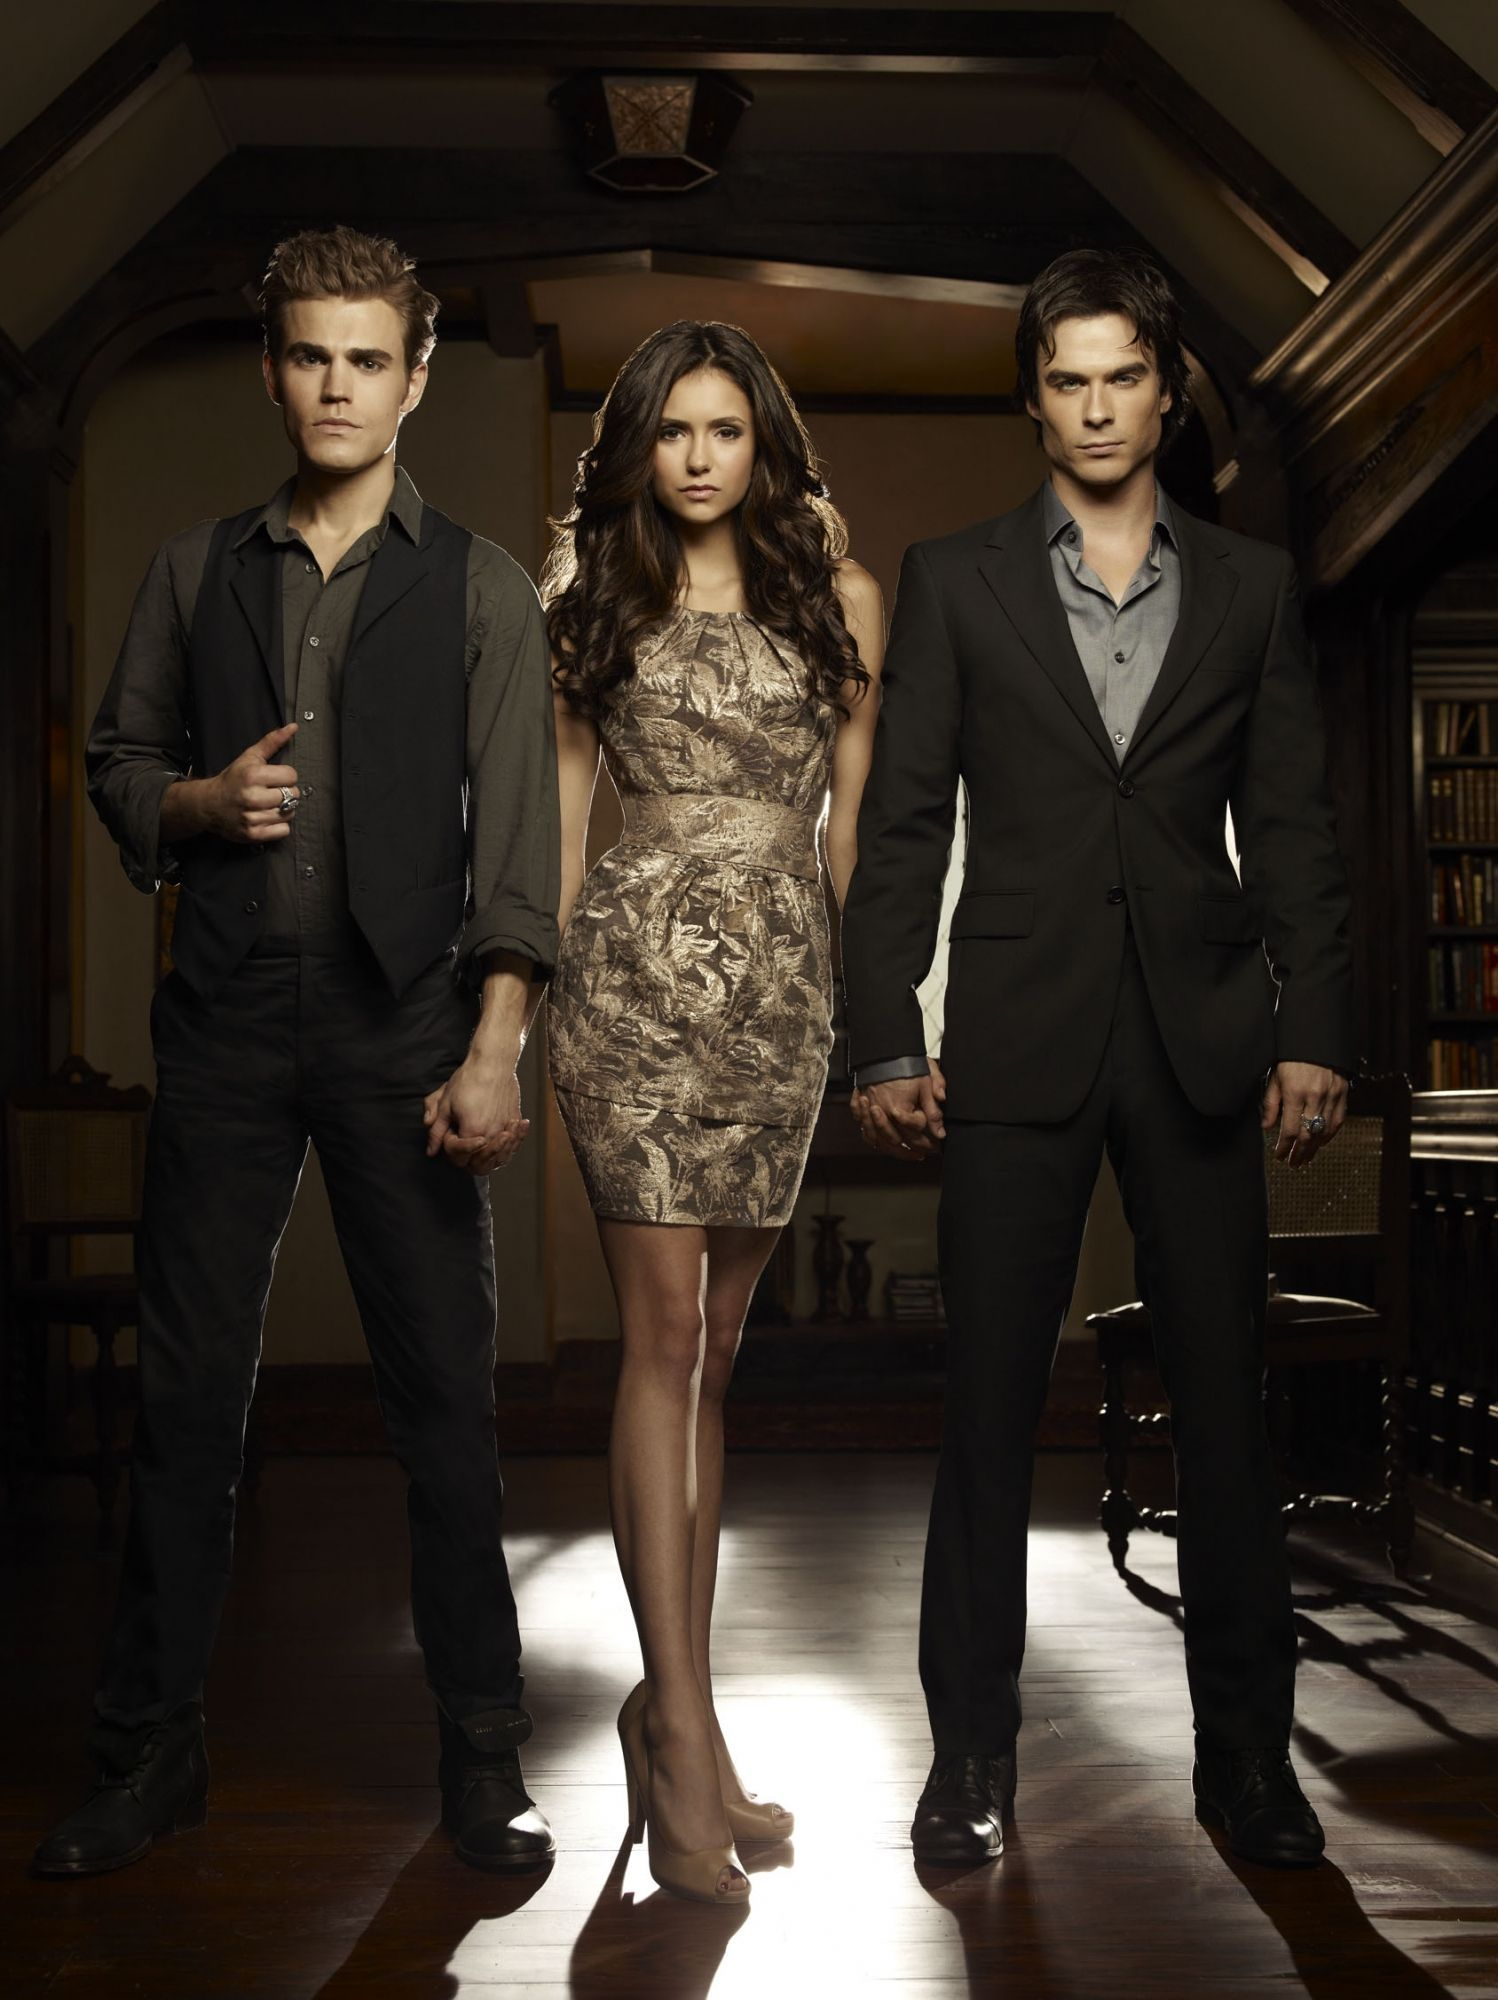 http://images4.fanpop.com/image/photos/14800000/Vampire-Diaries-Season-2-Promotional-Photo-HQ-the-vampire-diaries-tv-show-14861118-1498-2000.jpg